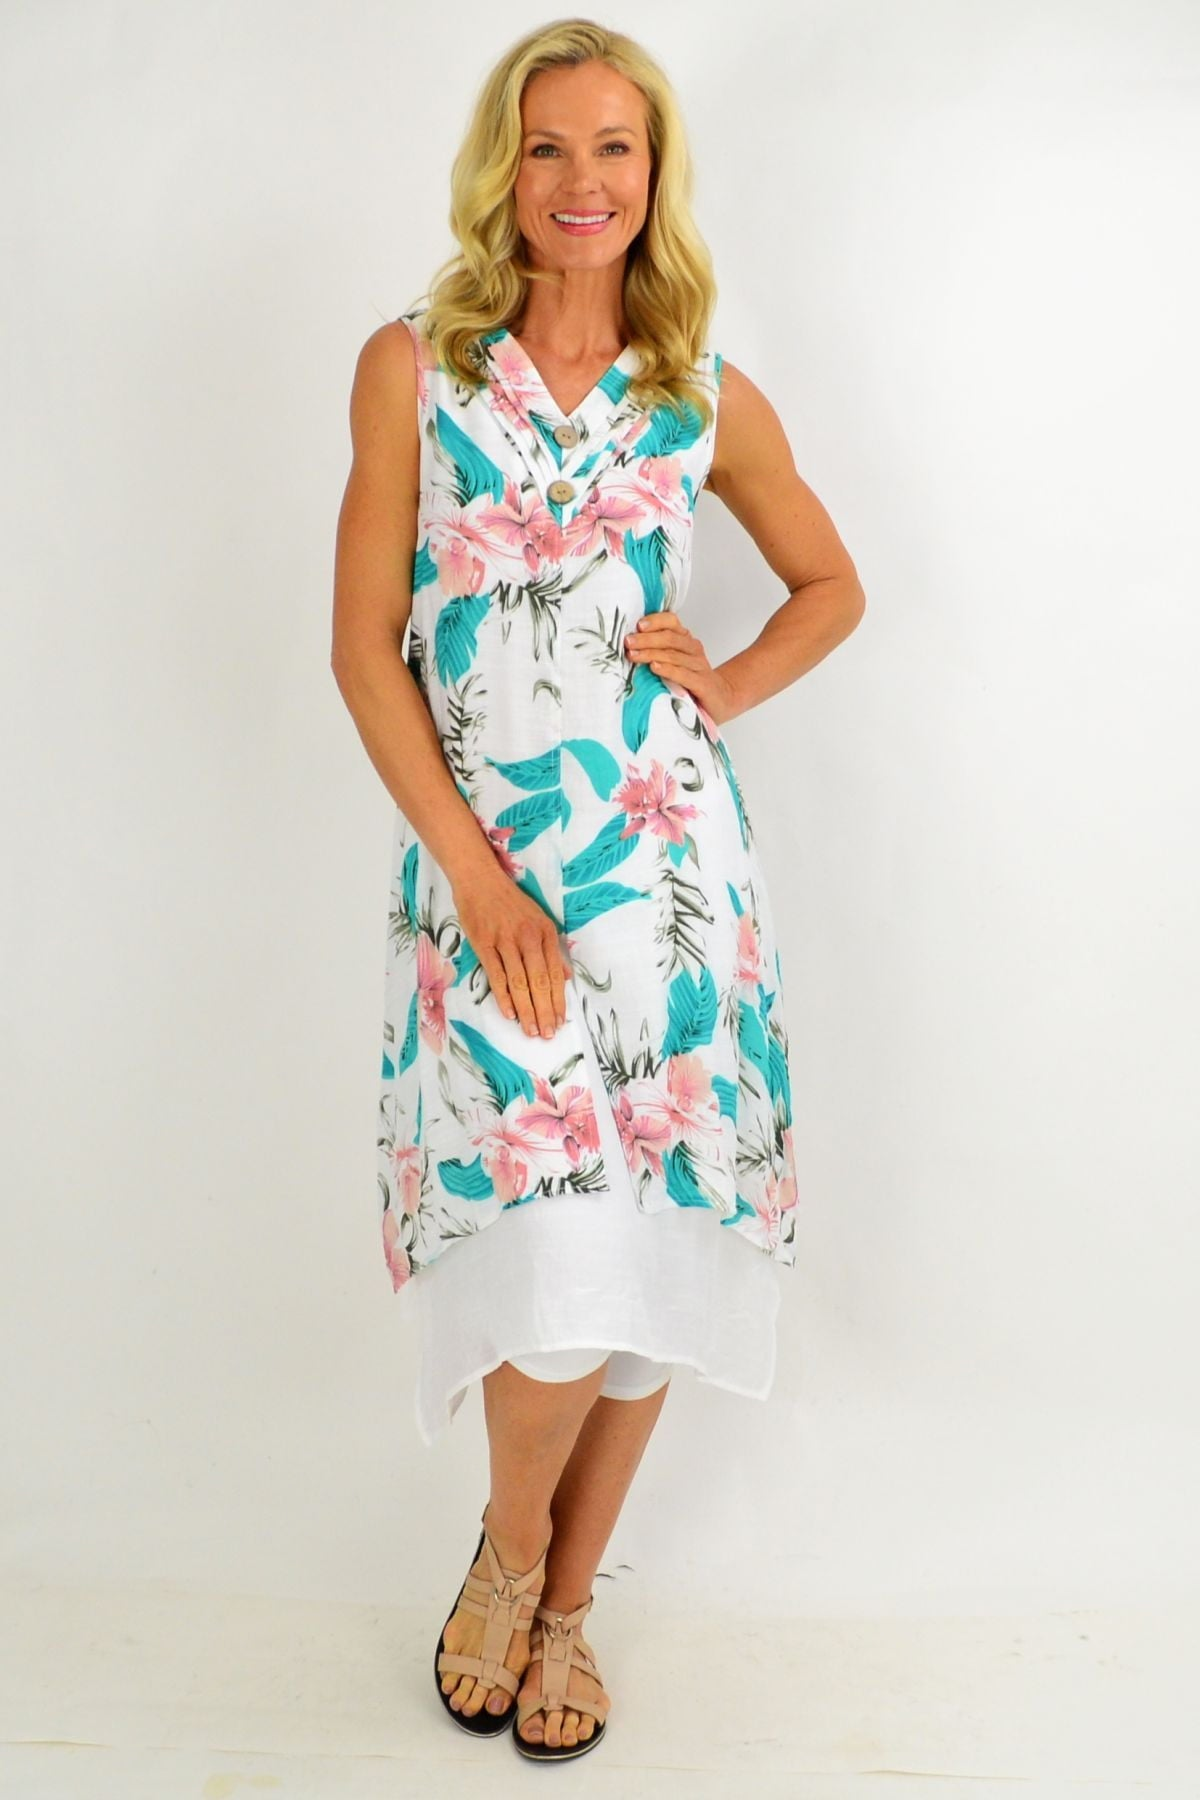 Pink Aqua Floral Overlay Summer Tunic Dress | I Love Tunics | Tunic Tops | Tunic | Tunic Dresses  | womens clothing online